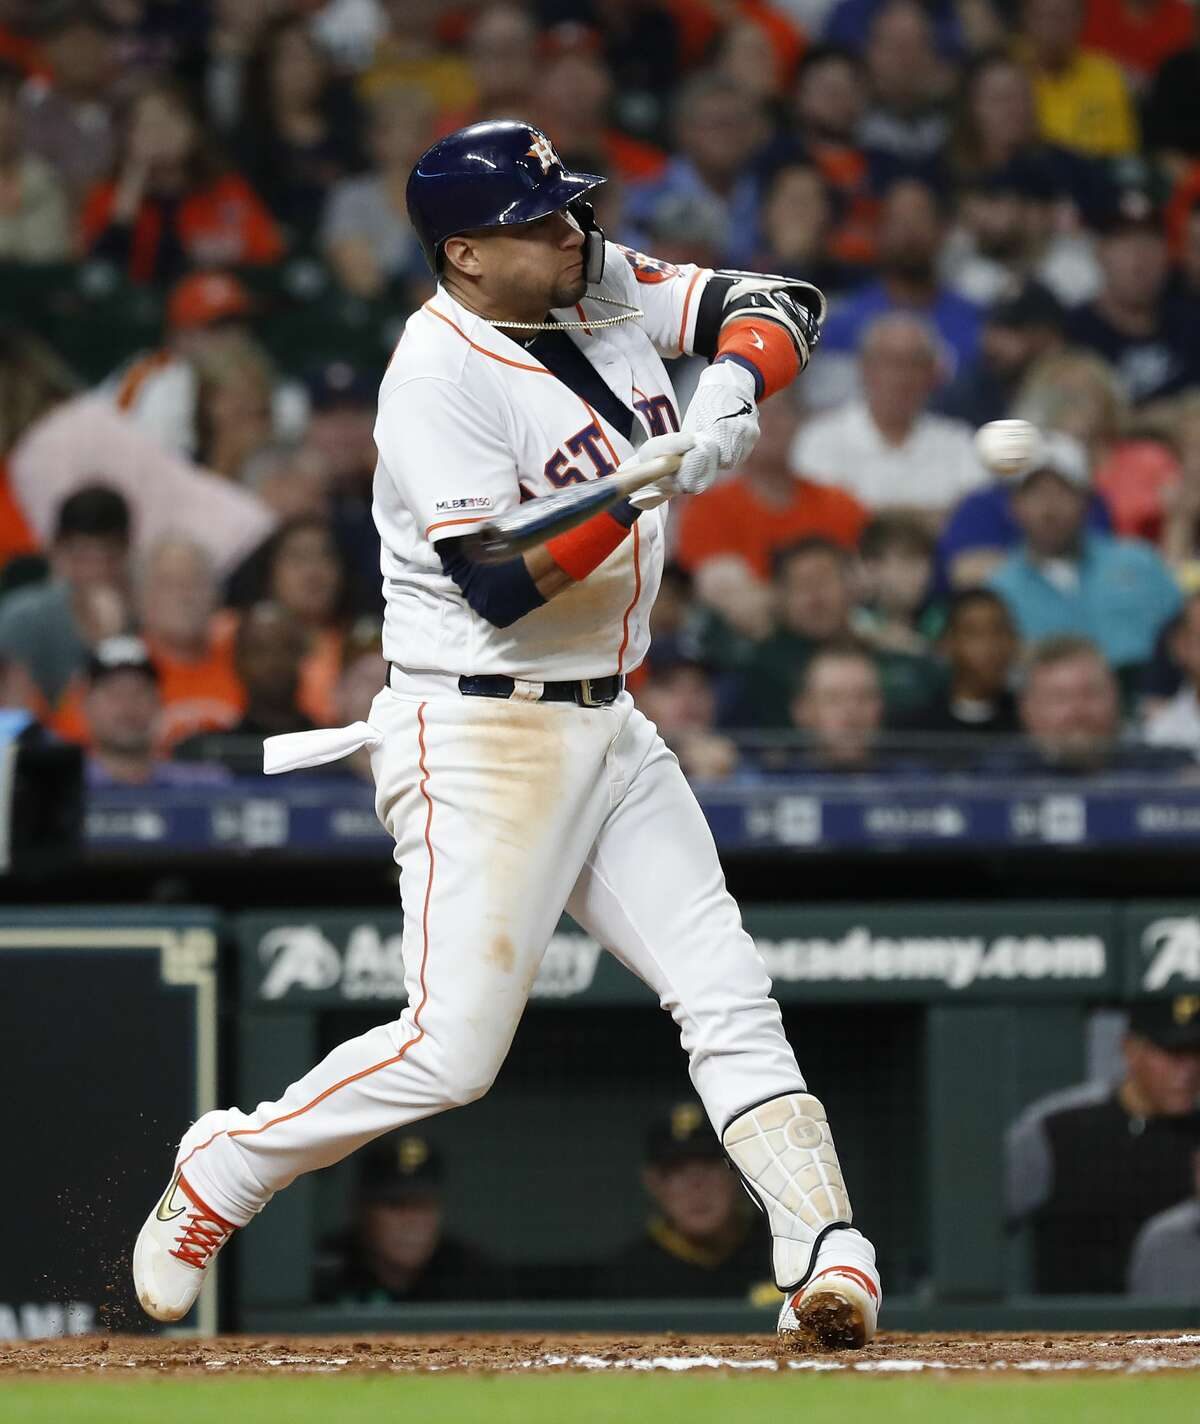 Houston Astros first baseman Yuli Gurriel (10) hits a two-run home run off of Pittsburgh Pirates starting pitcher Trevor Williams during the fourth inning of an MLB baseball game at Minute Maid Park, Tuesday, June 25, 2019.